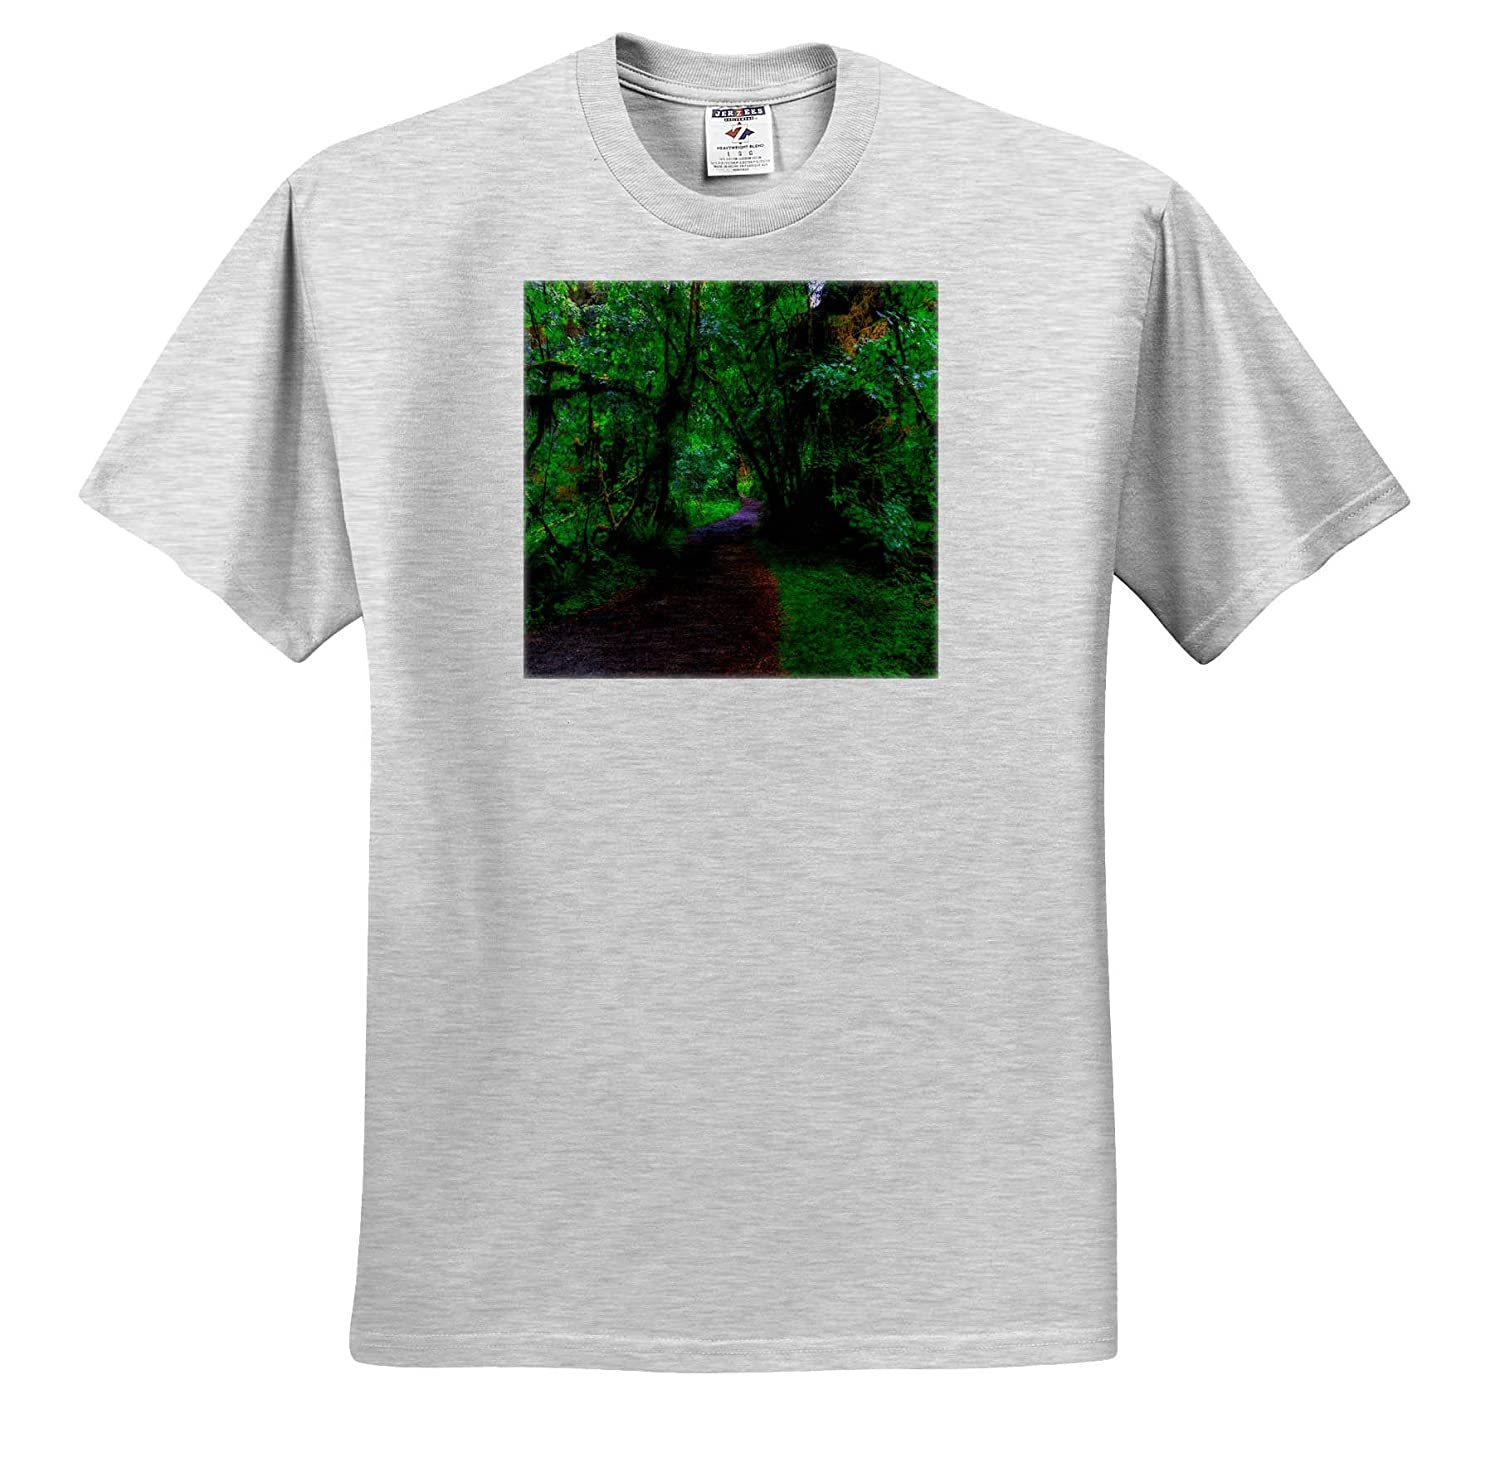 3dRose Mike Swindle Photography T-Shirts Landscapes Path Through Green Forest